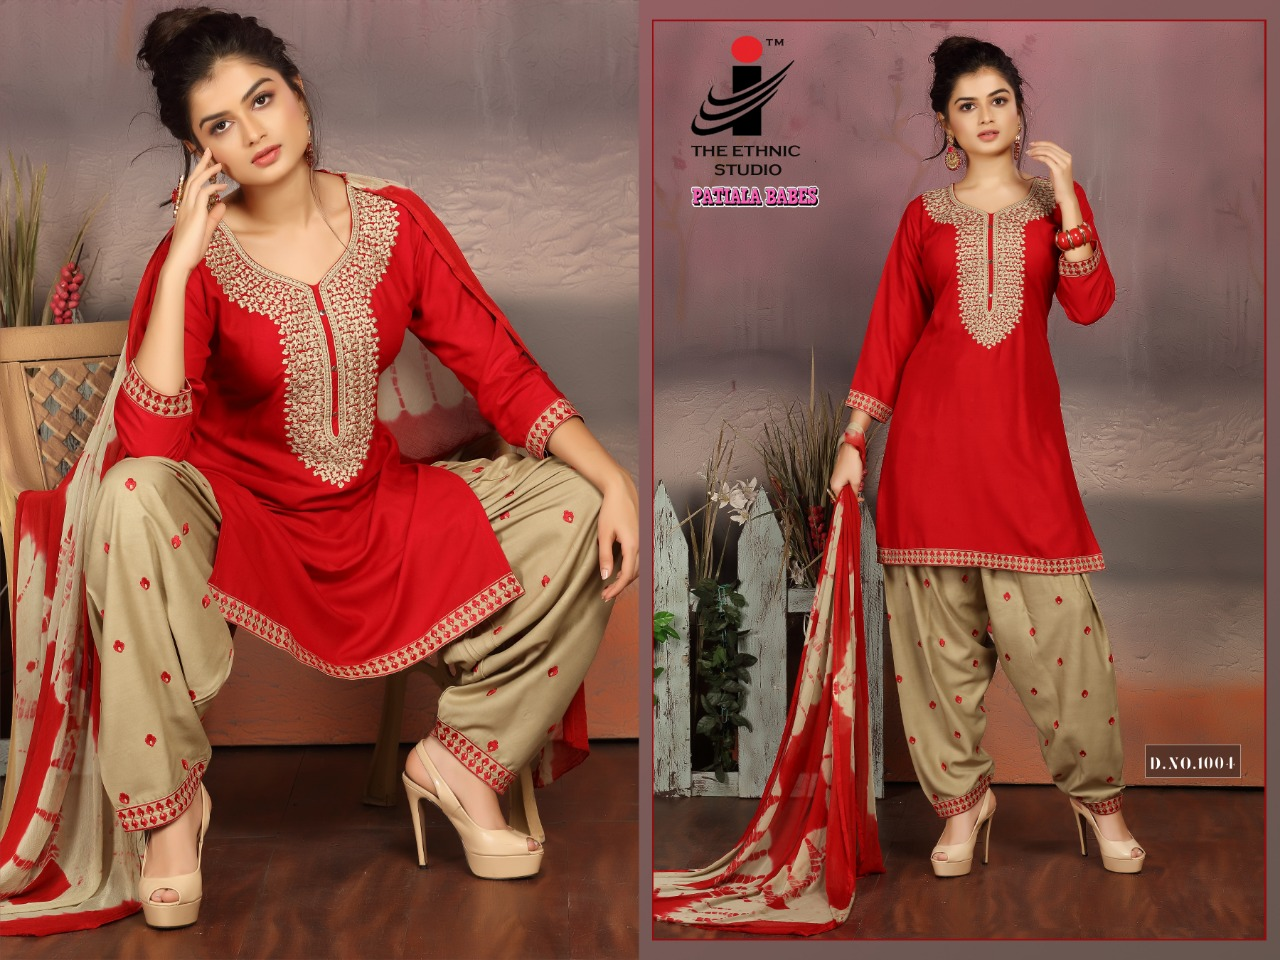 The Ethnic Studio Patiyala Babes collection 6